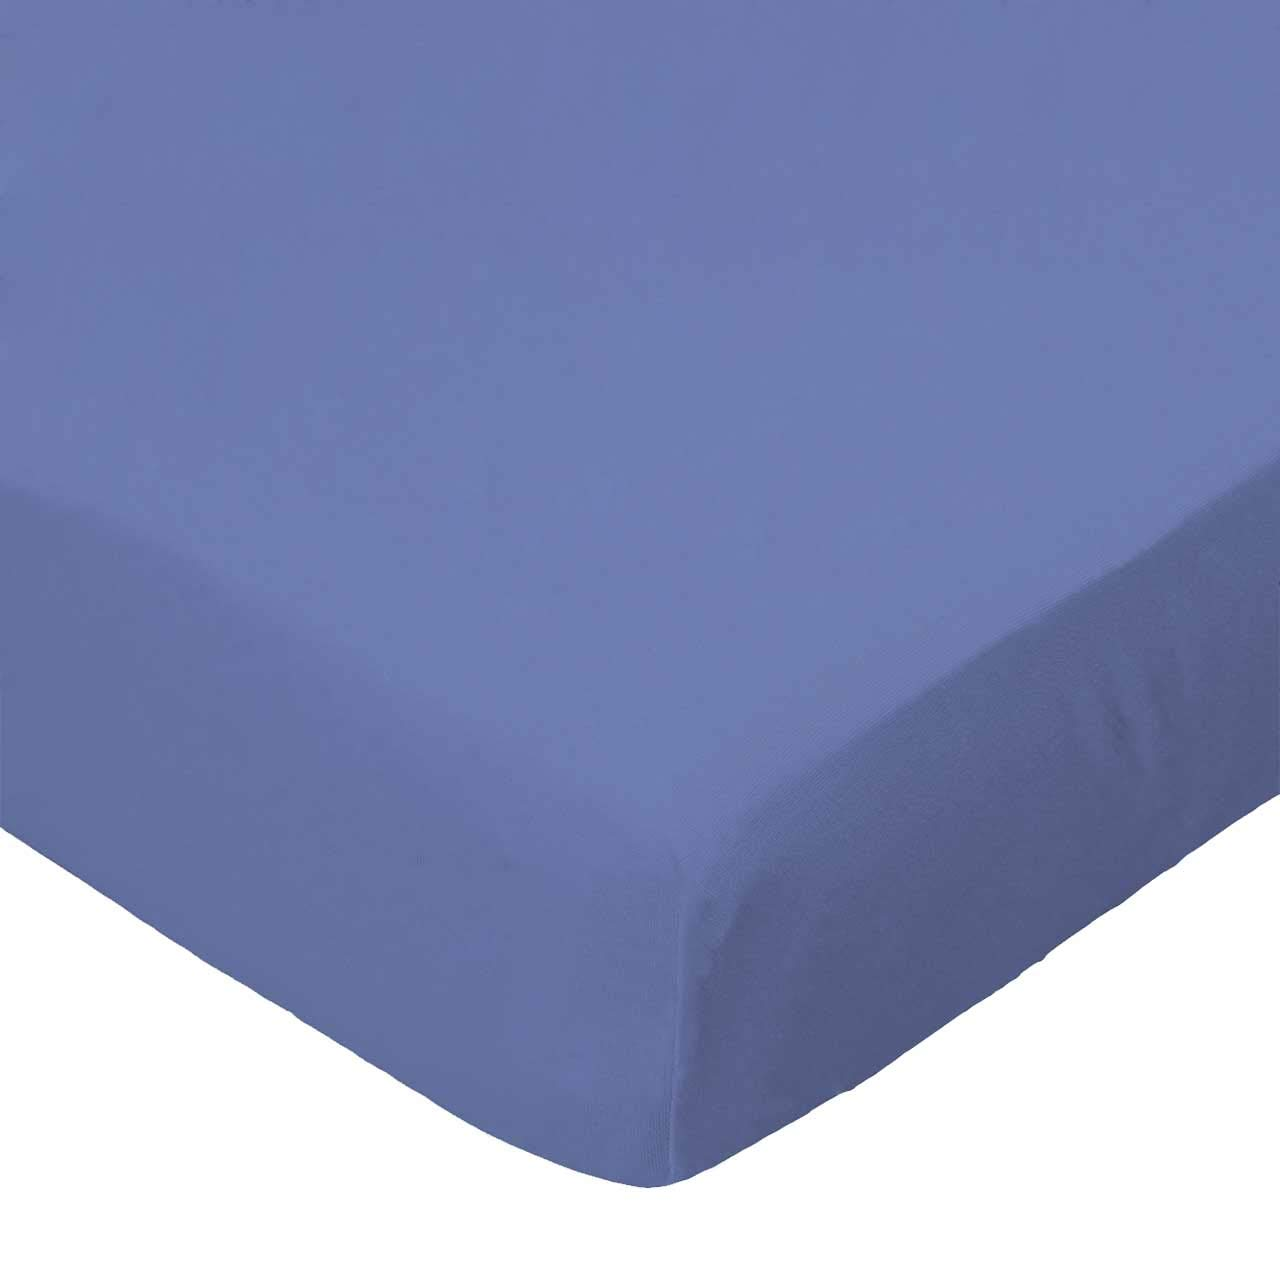 SheetWorld Fitted Cradle Sheet - Flannel - Denim Blue - Made In USA by sheetworld   B004O8ECYO